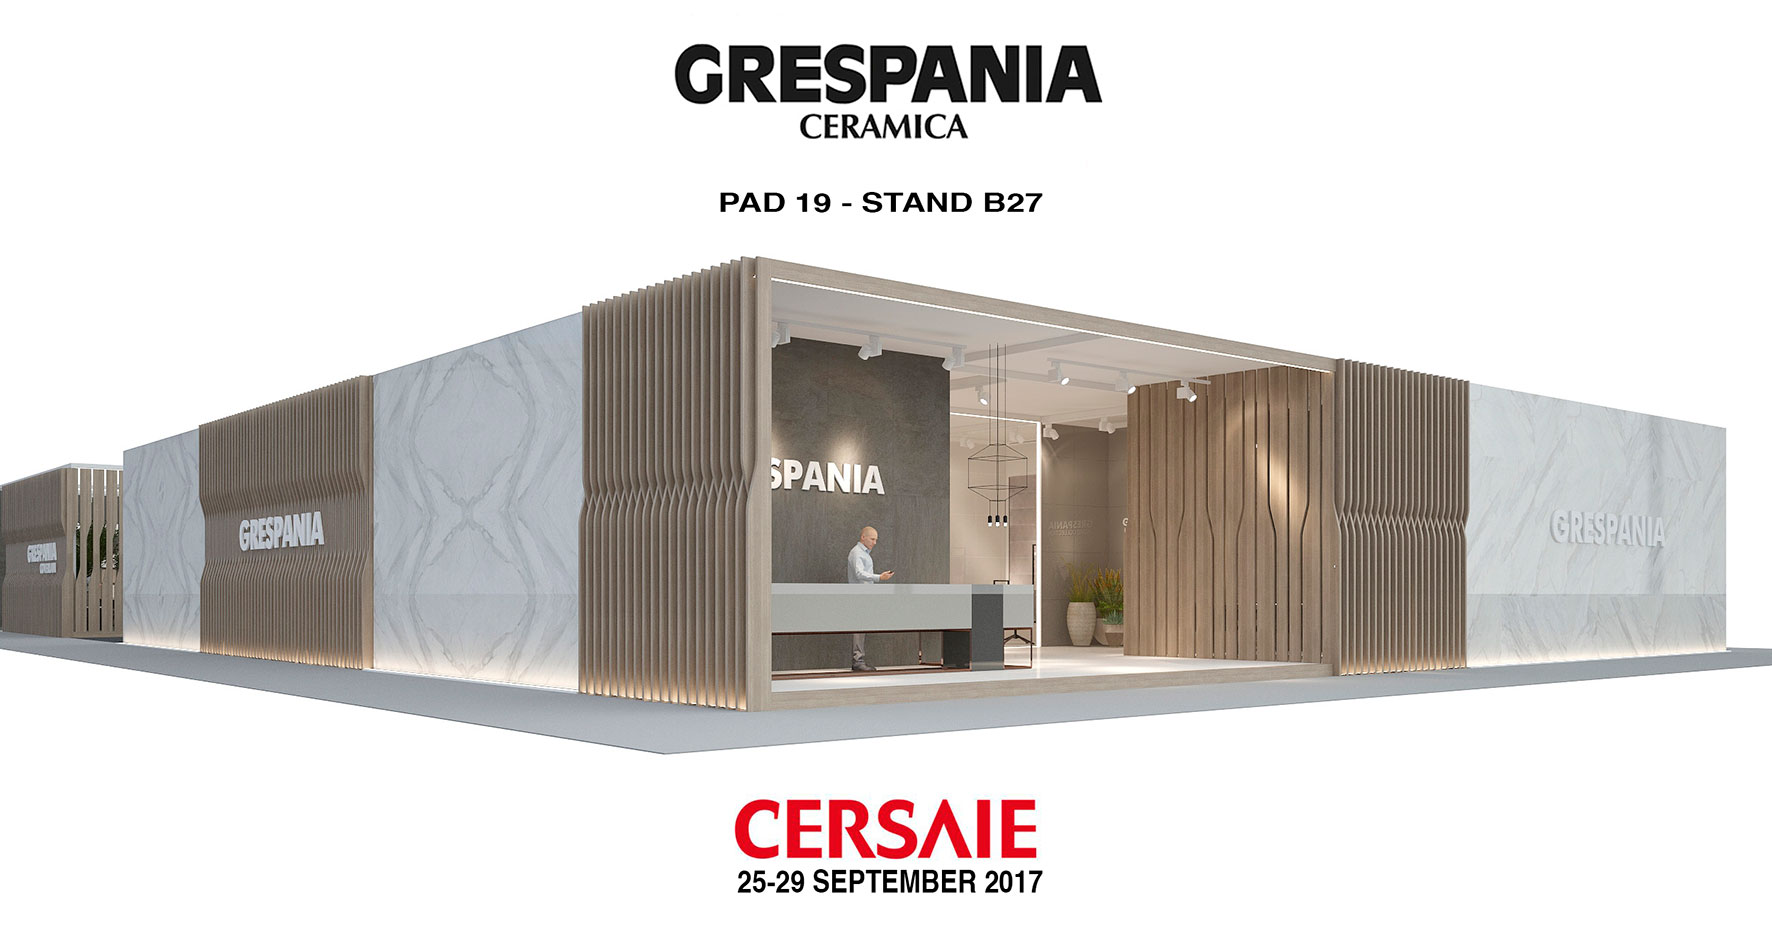 GRESPANIA AT CERSAIE 2017